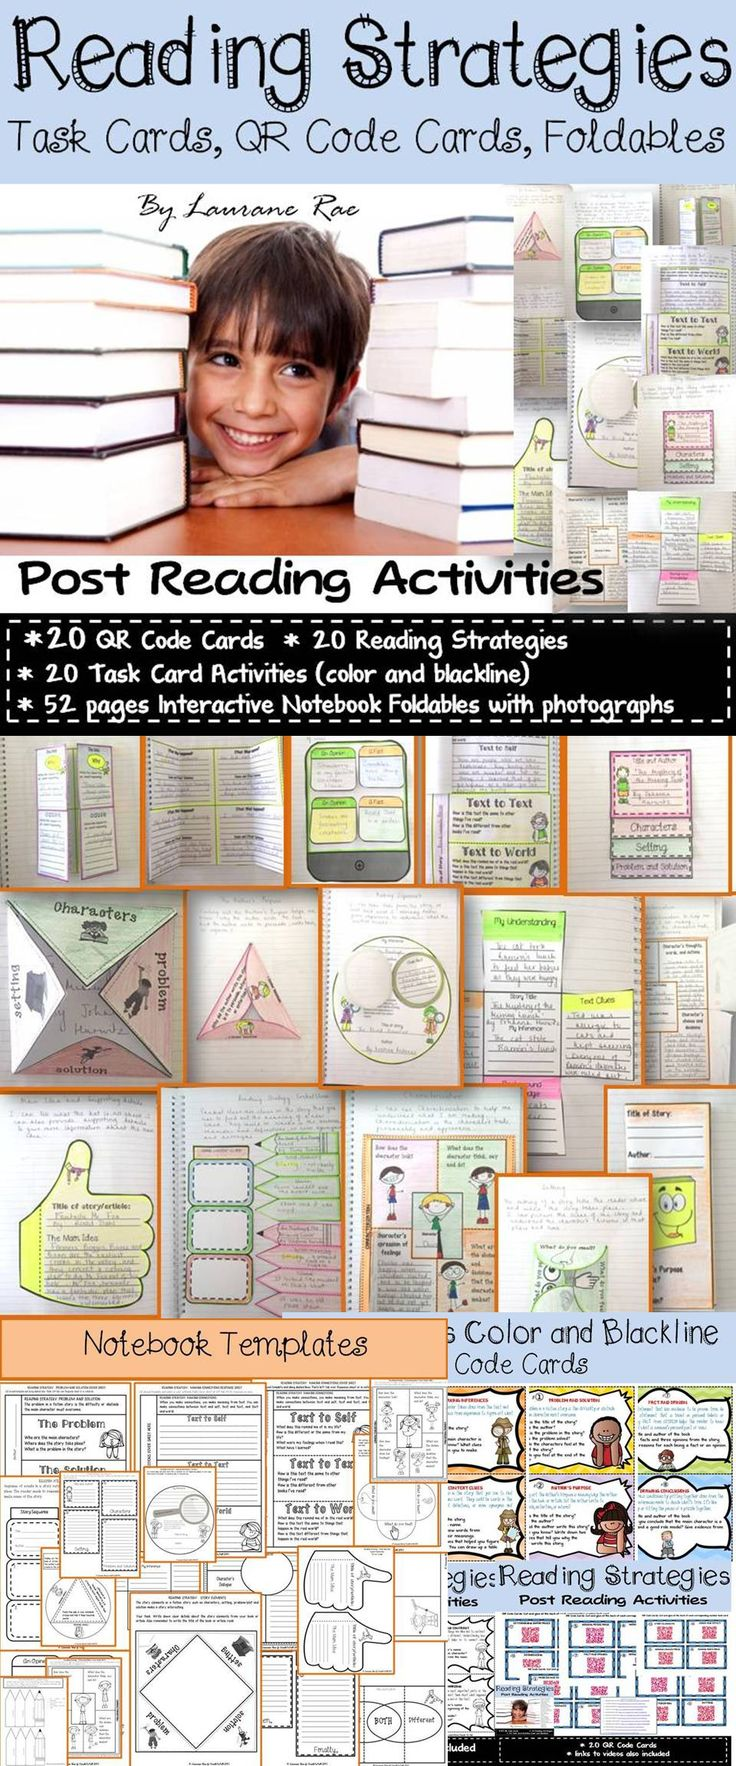 This bundle of 20 Task Card, QR Code Cards, and 52 pages of notebook foldables with color photographs of assembly instructions is sure to equip your students with key reading skills,and would definitely prepare them for standardized testing. $